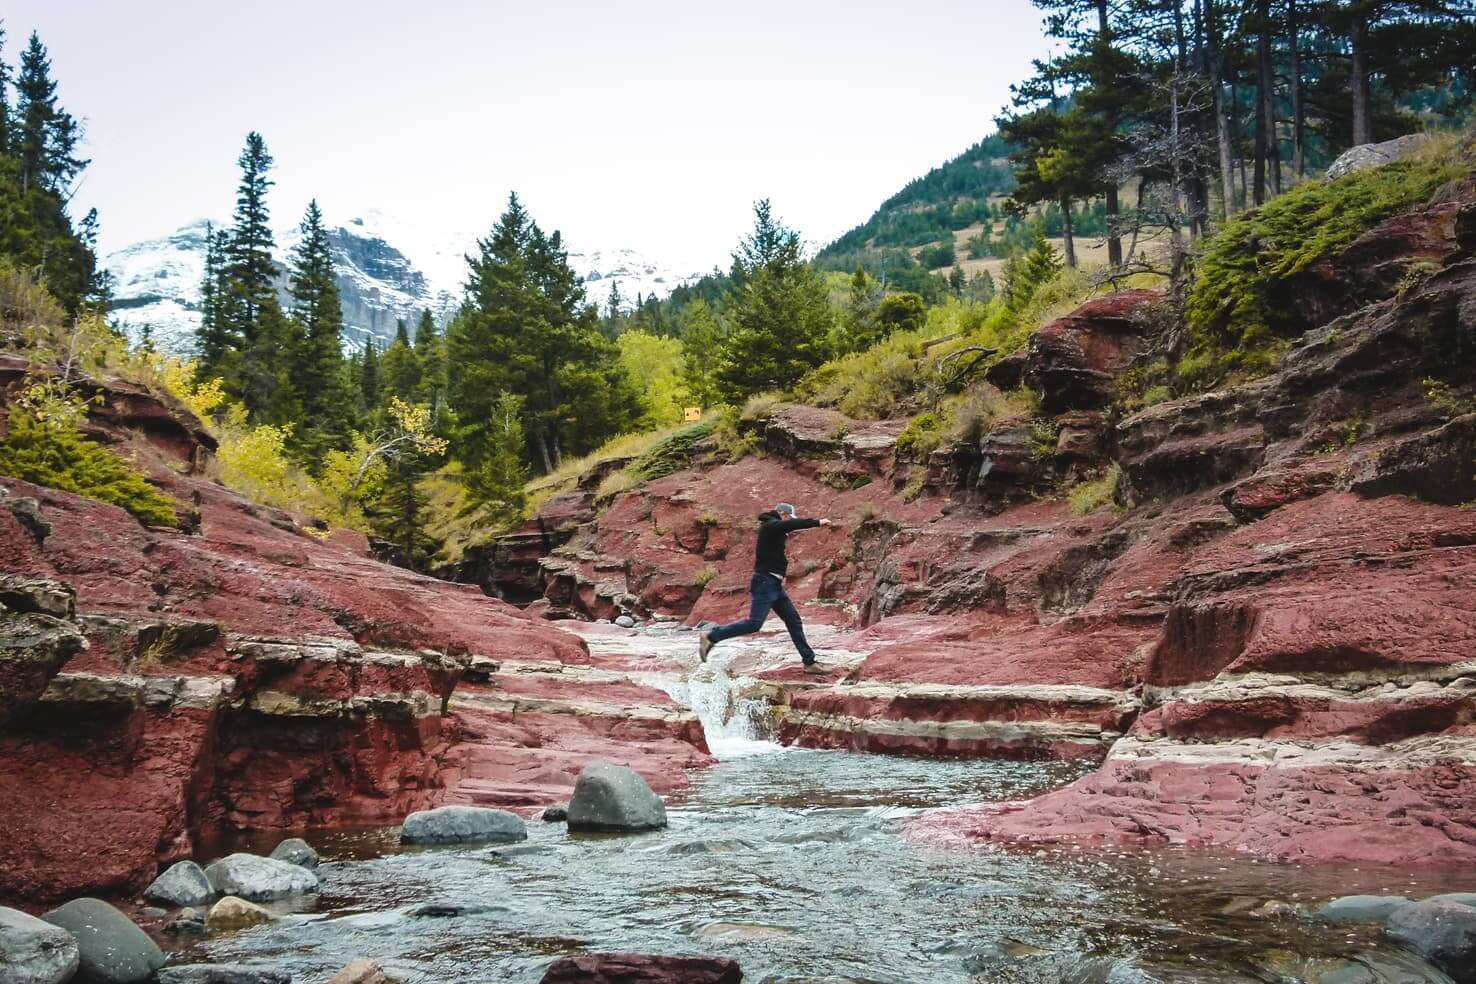 Canadian Rockies road trip itinerary - Red Rock Canyon in Waterton Lakes National Park